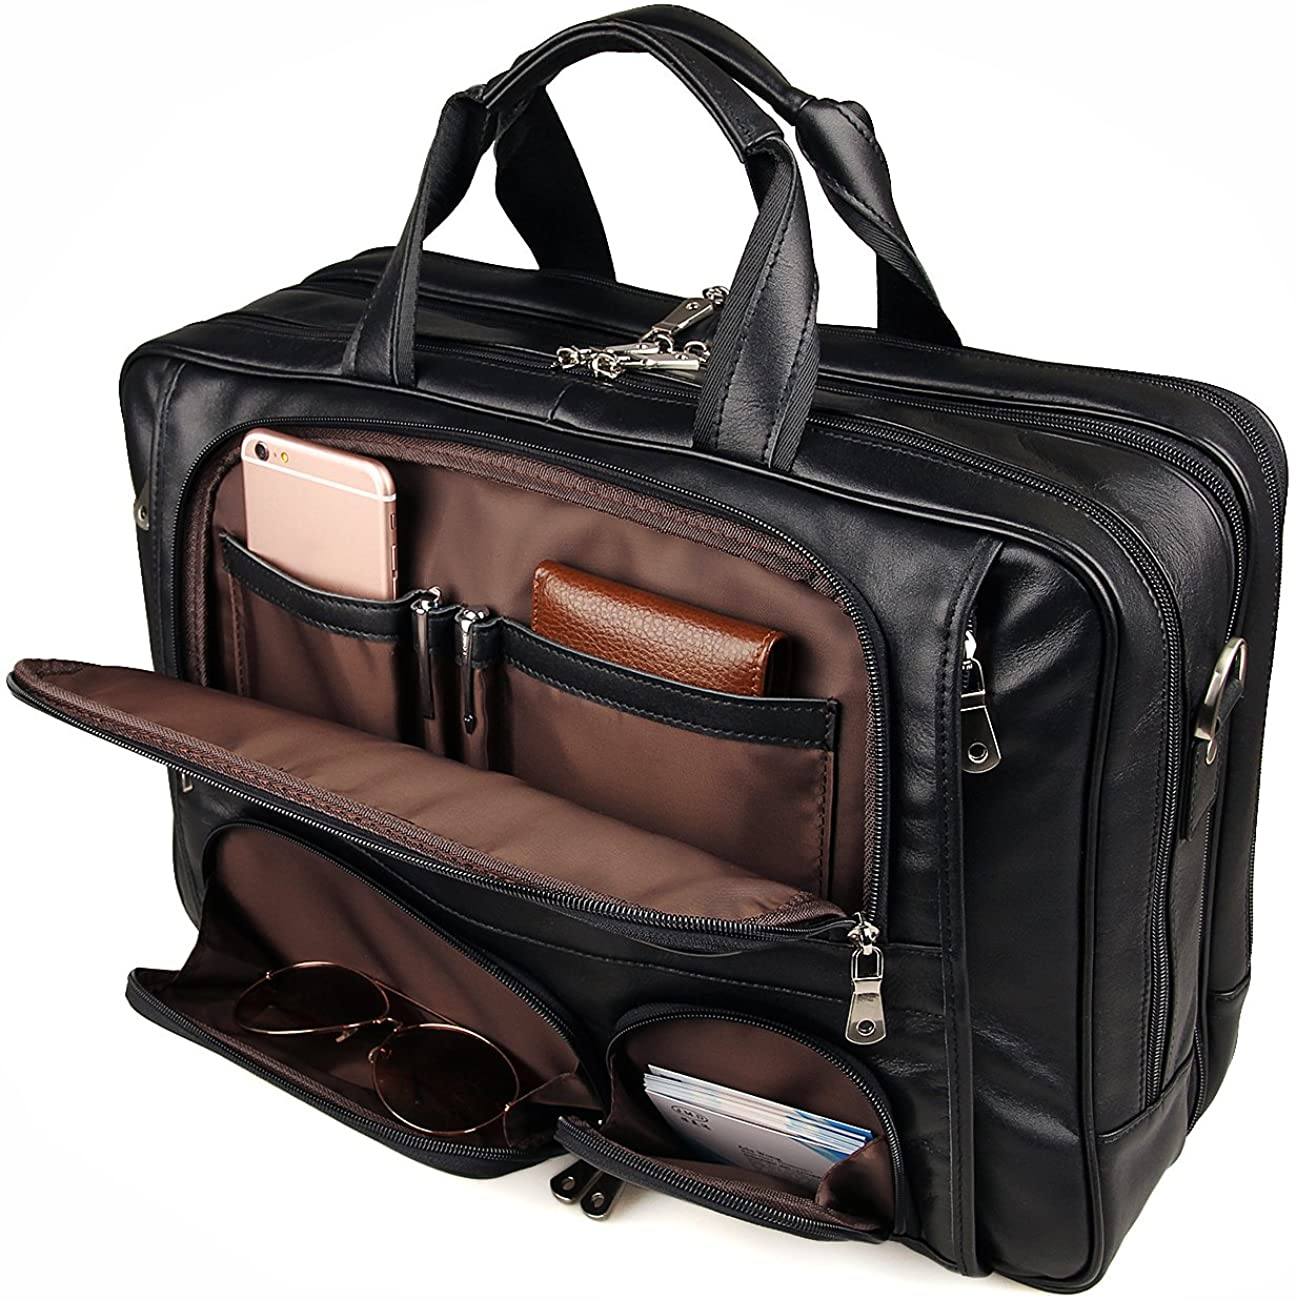 Image of Augus Business Travel Briefcase Genuine Leather Duffel Bags for Men Laptop Bag fits 15.6 inches Laptop Briefcases